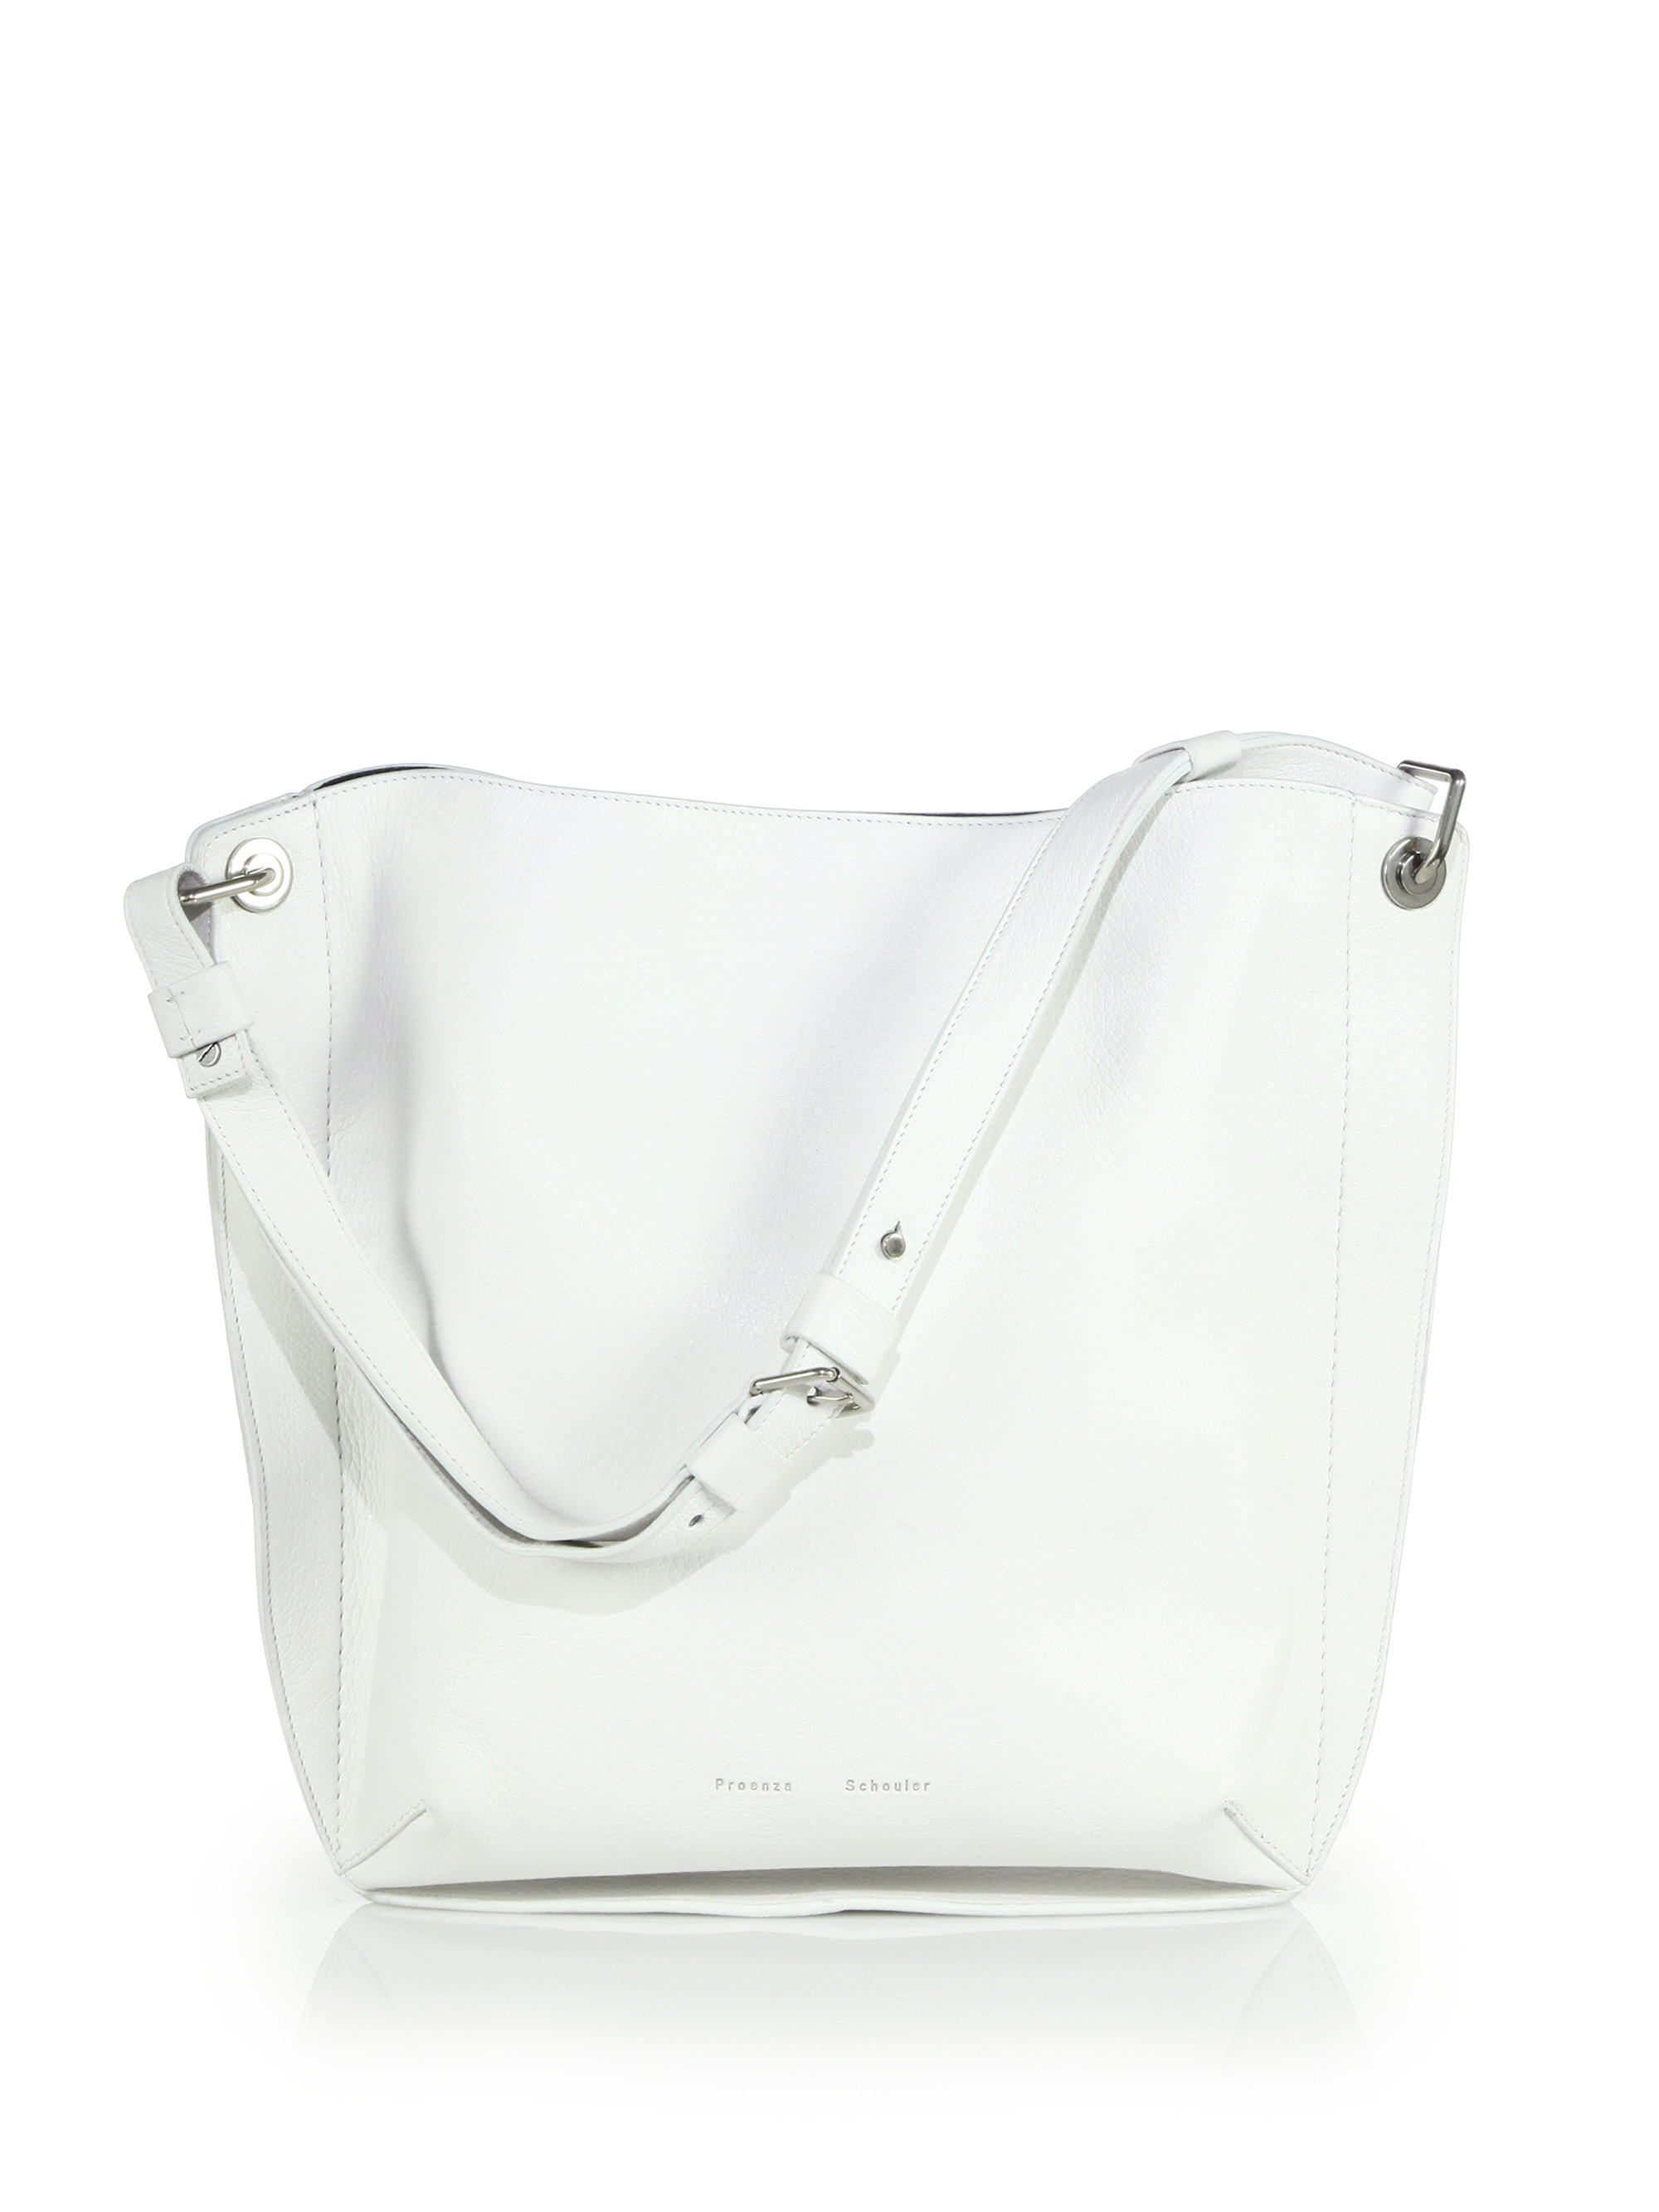 Lyst - Proenza Schouler Prospect Large Hobo Bag in White fddf0b65a5b42